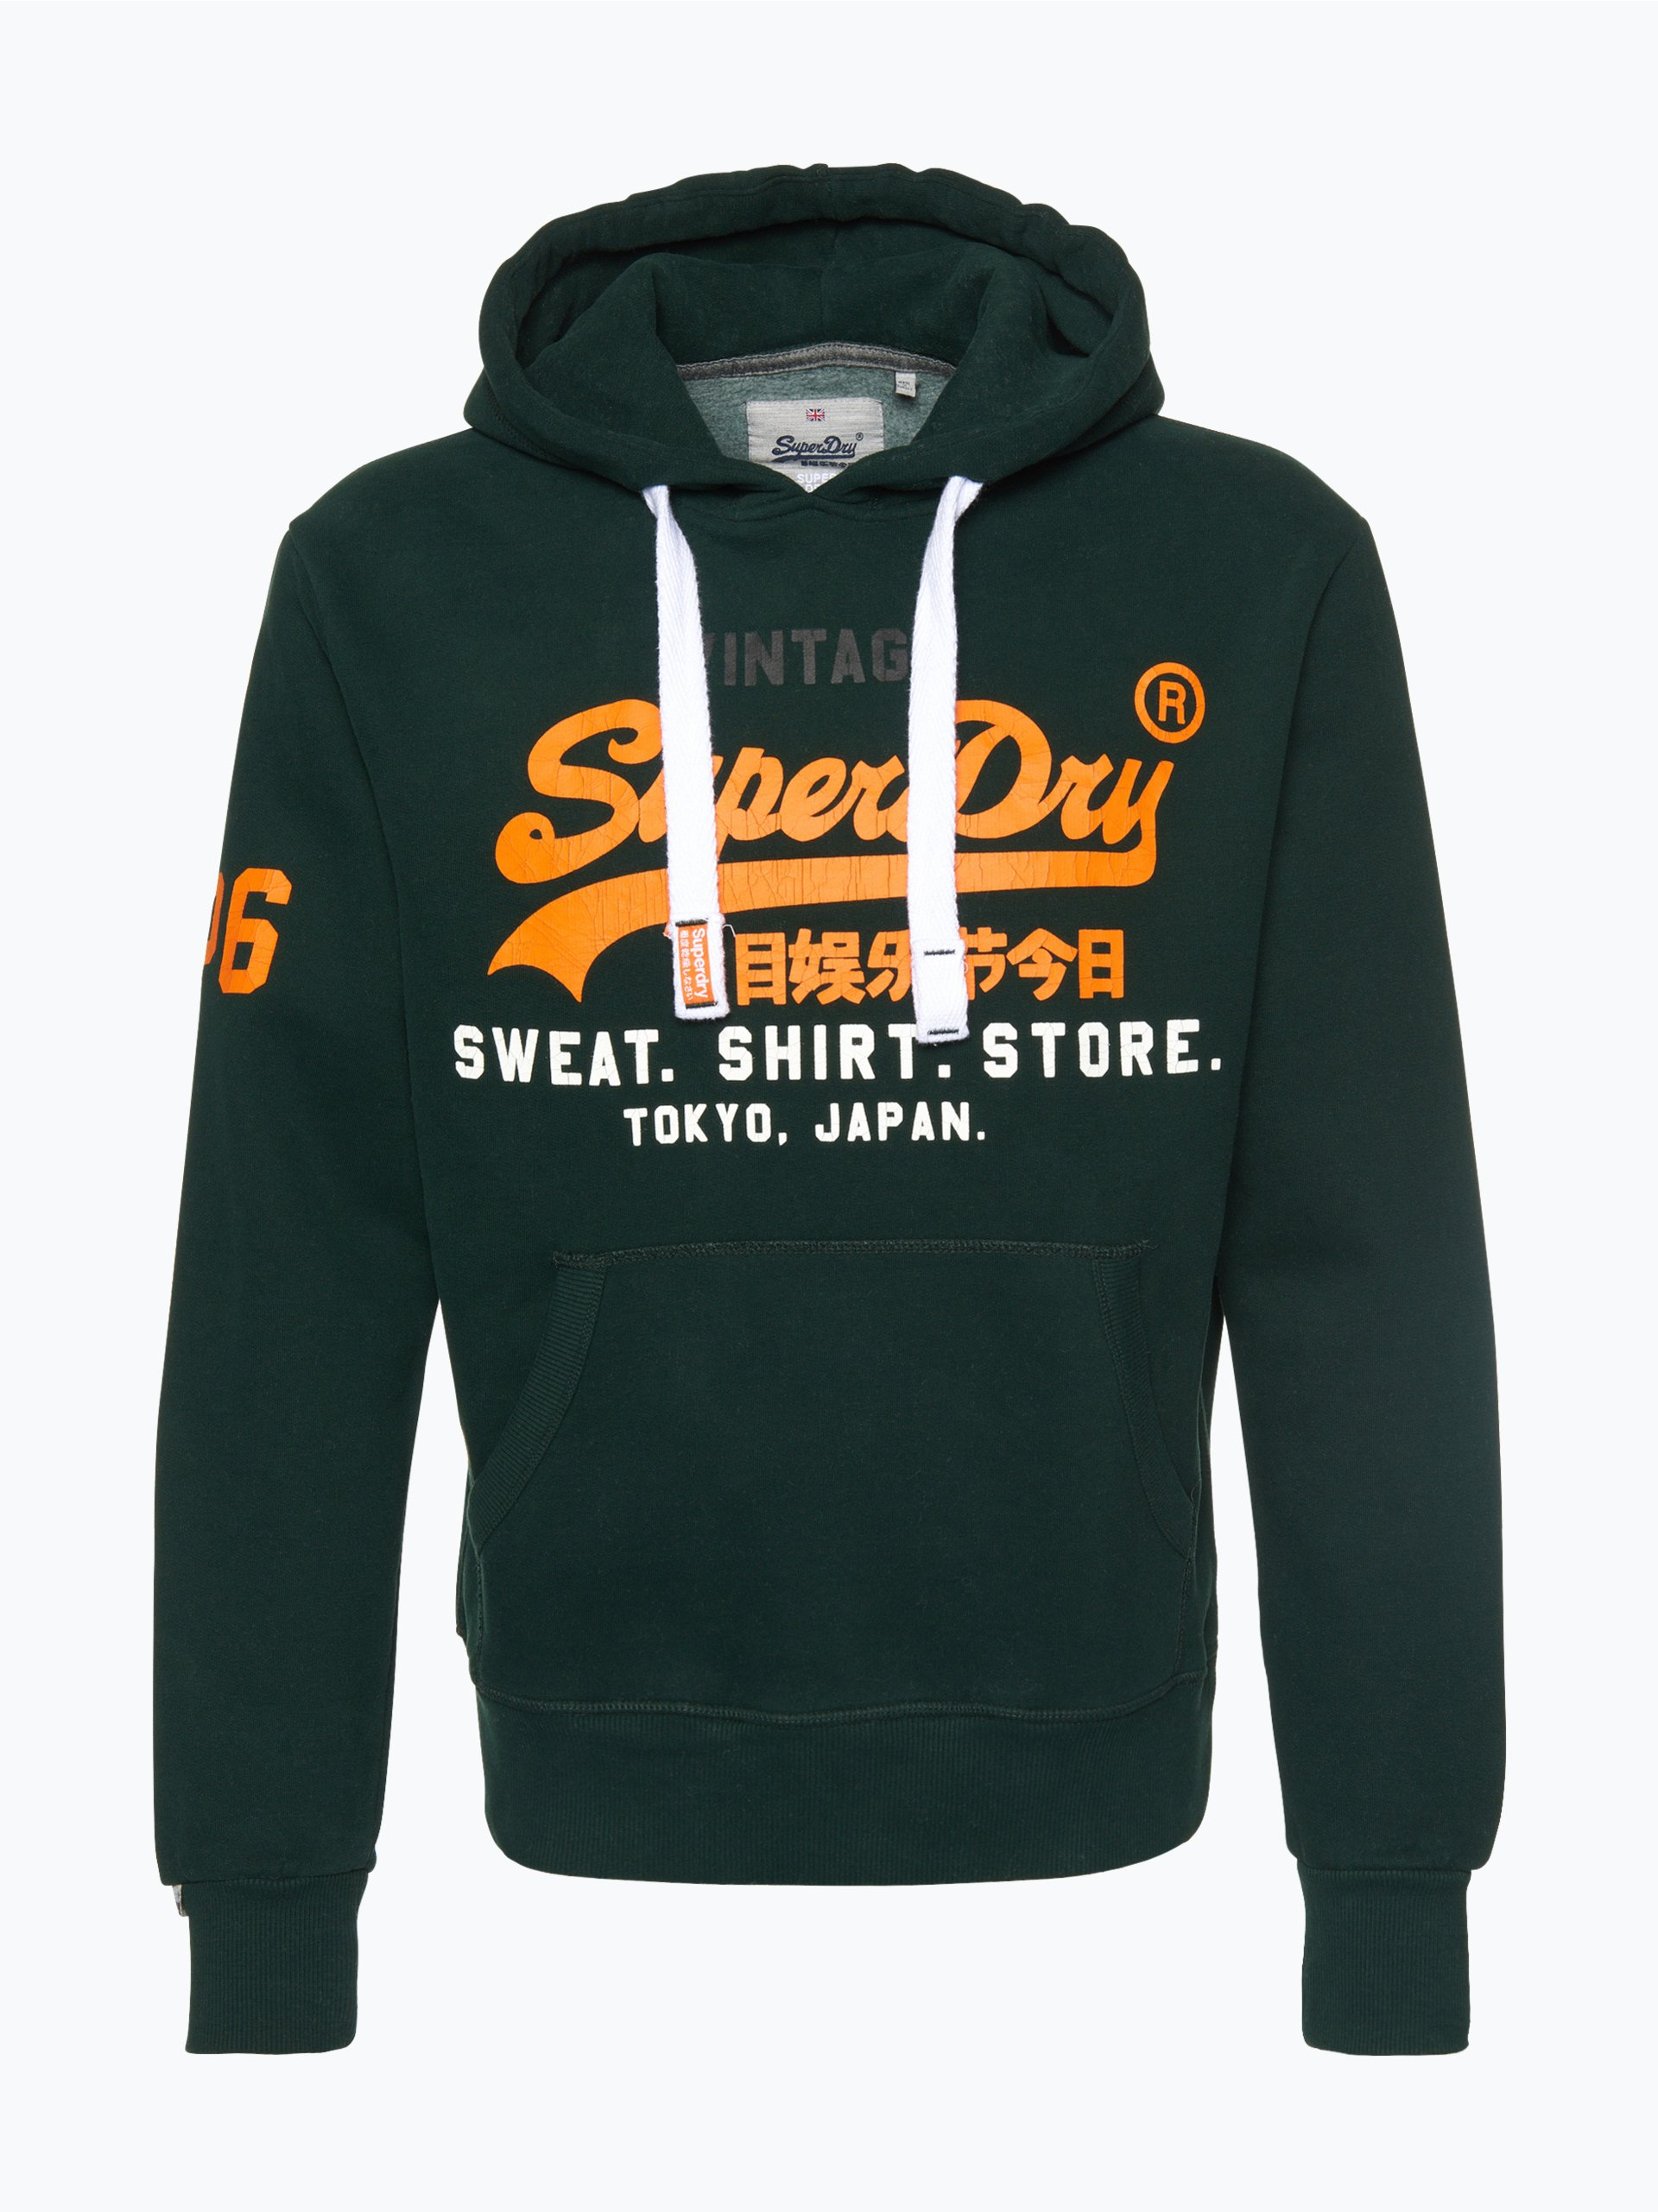 superdry herren sweatshirt tanne uni online kaufen. Black Bedroom Furniture Sets. Home Design Ideas